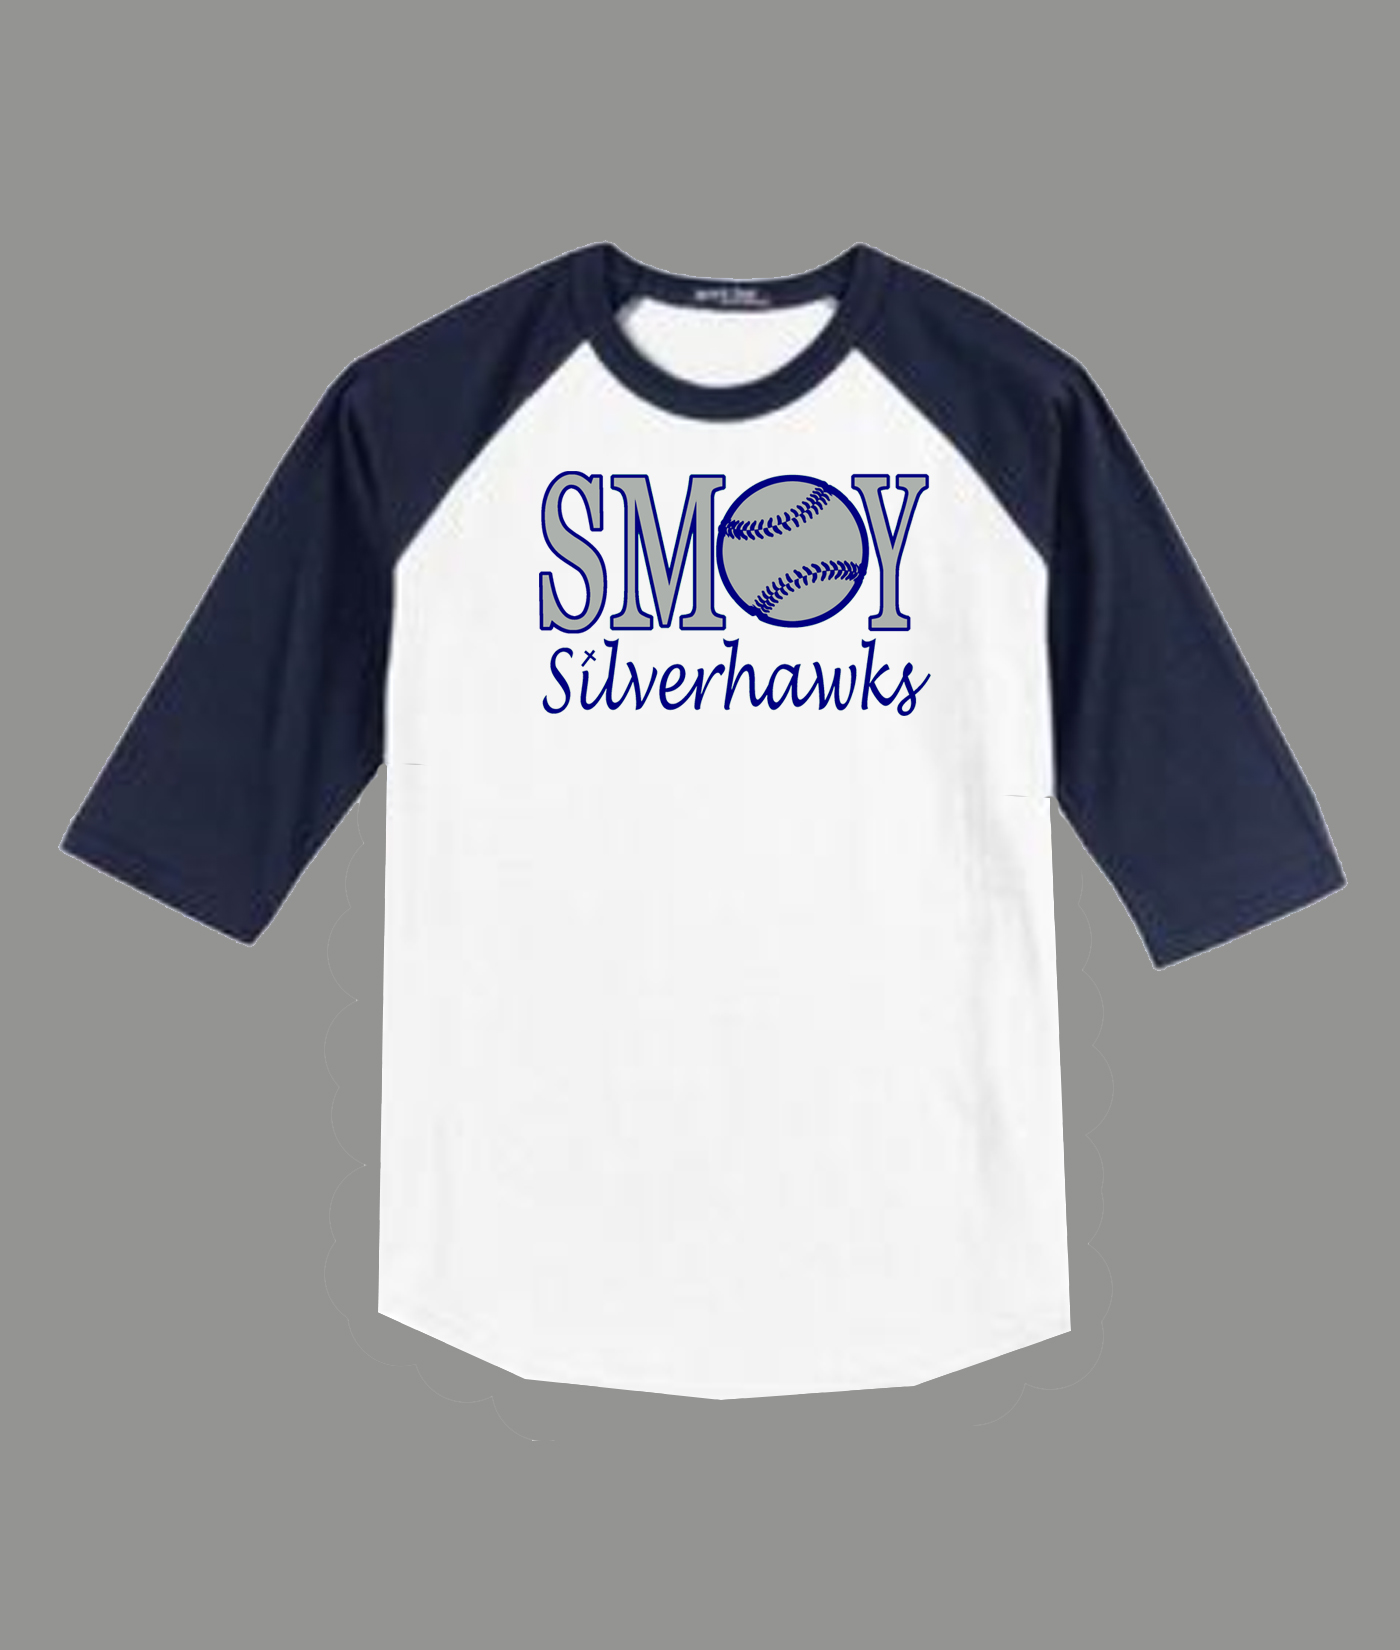 3/4 Sleeve Navy White T-shirt SMOY Baseball